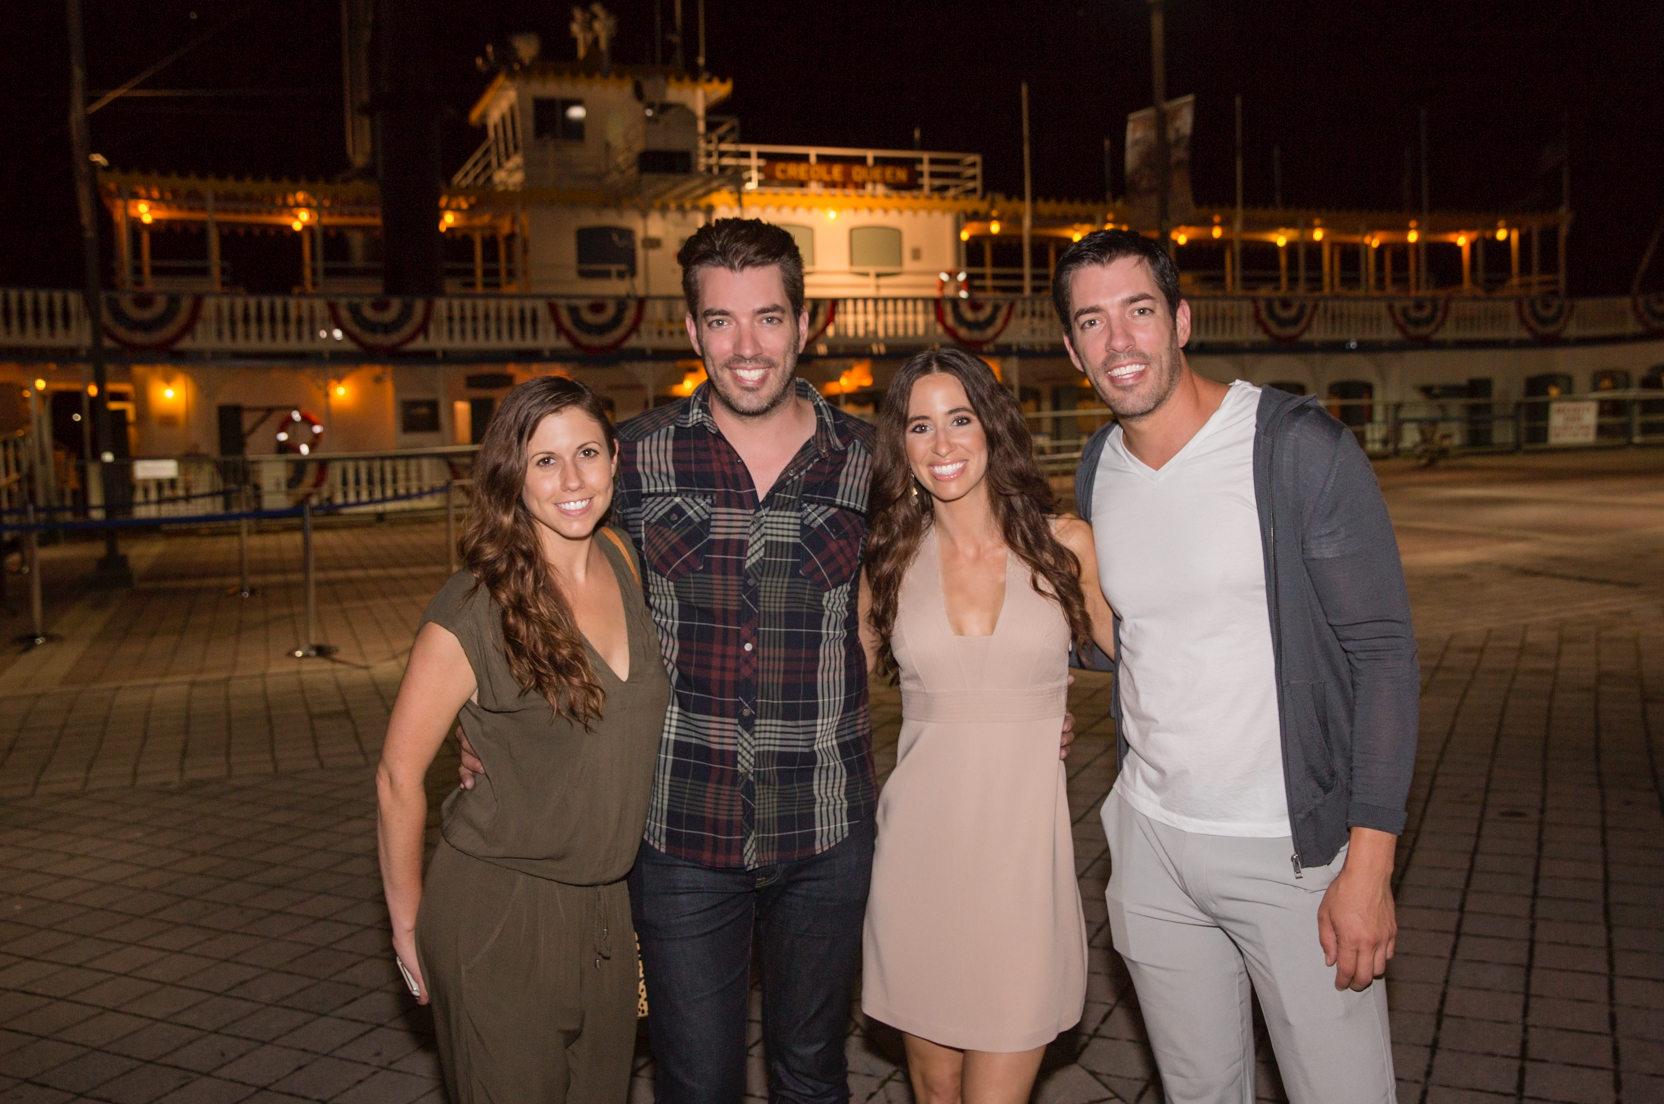 From left to right: Kelly Sutton, Jonathan Scott, Sarah James Moss, and Drew Scott